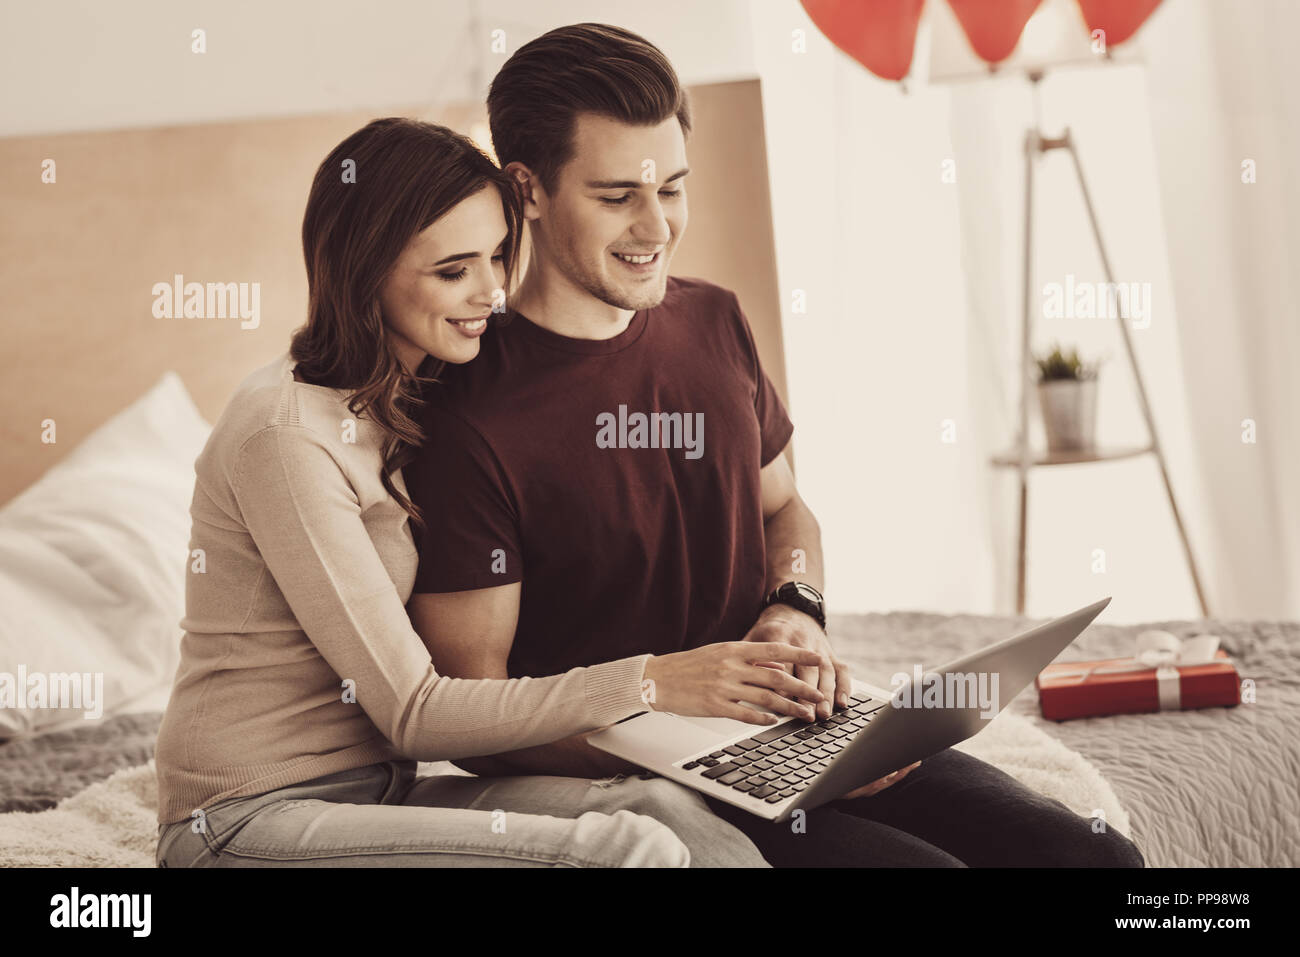 Skillful businesswoman helping boyfriend typing business letter on laptop - Stock Image